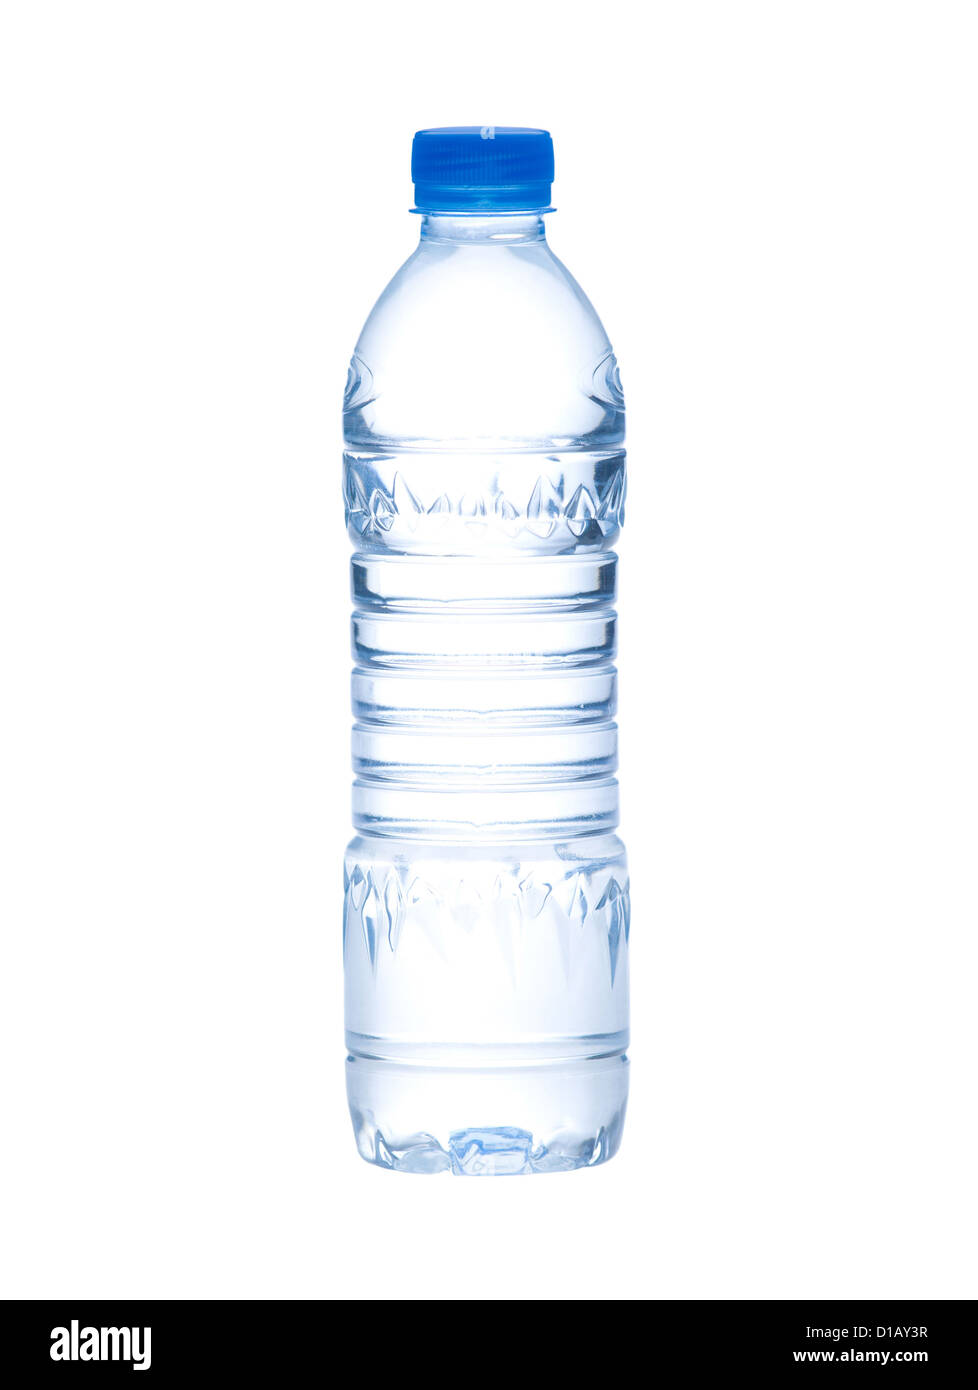 Empty and clear drinking water bottle needed you to putting a new brand or sign - Stock Image